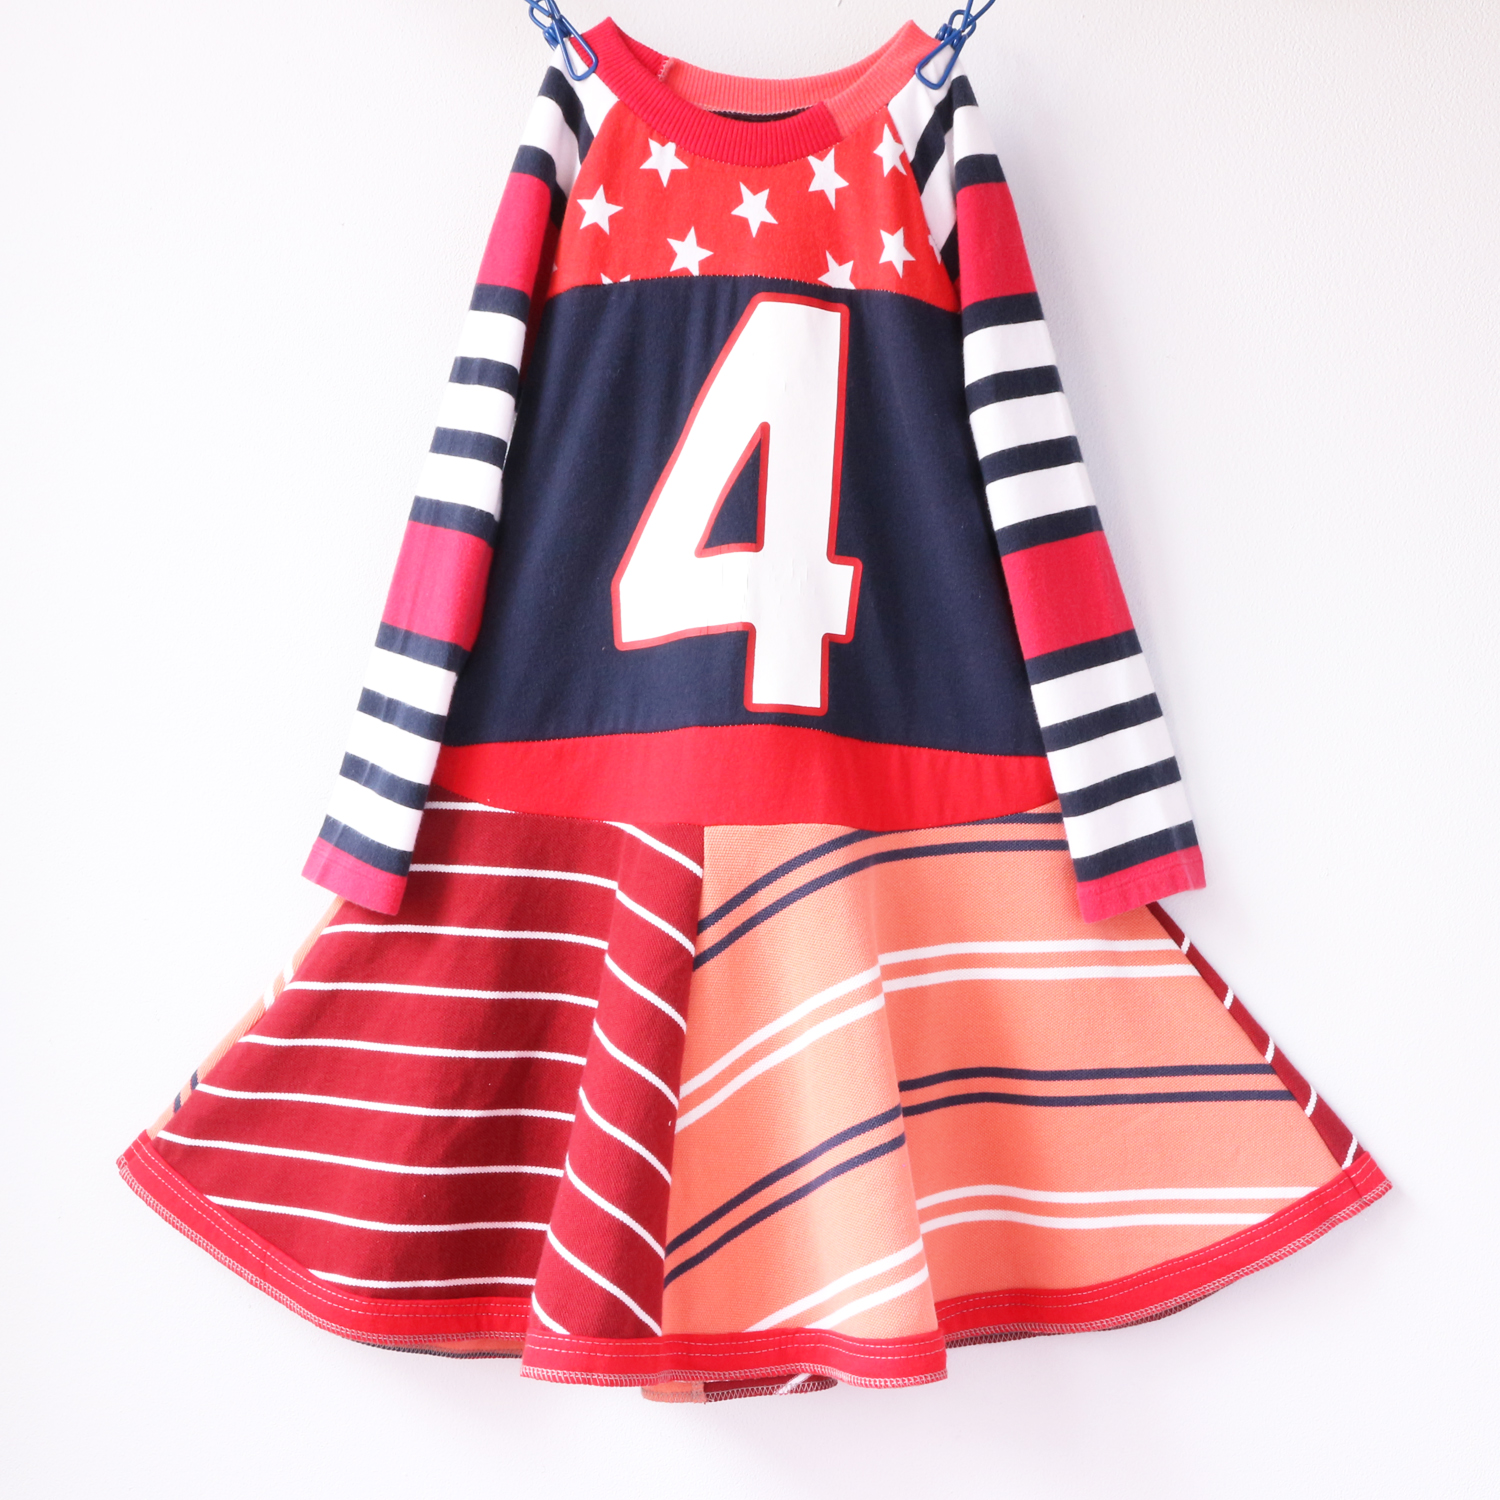 4T stars:4:stripes:red:ls:twirl.jpg